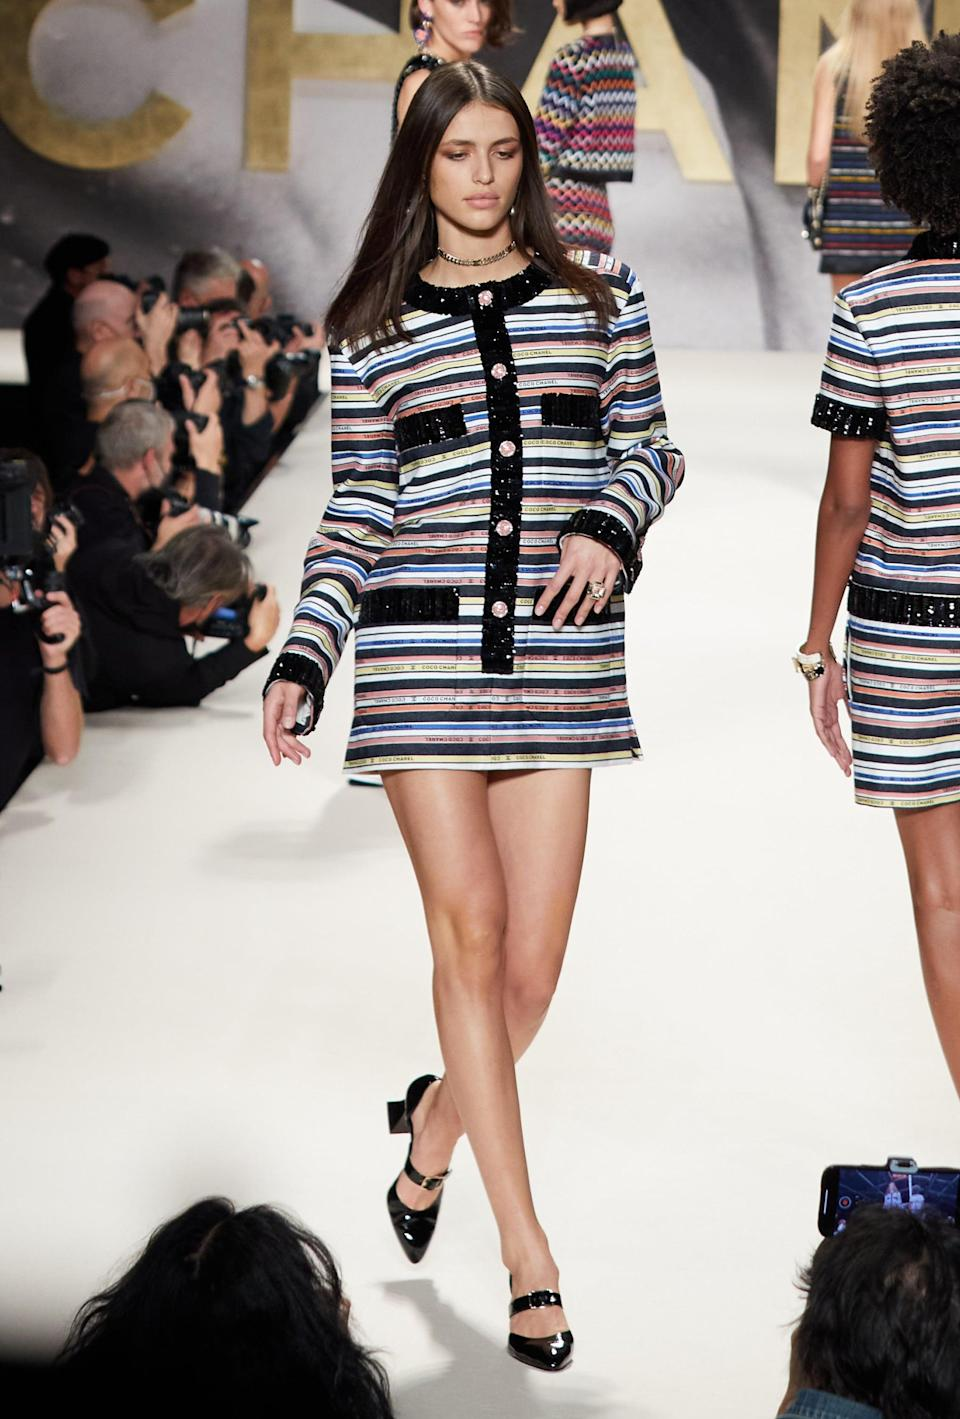 <p>The '60s mod silhouette is back (as present on many runways this season) and Chanel is having fun with it.</p>